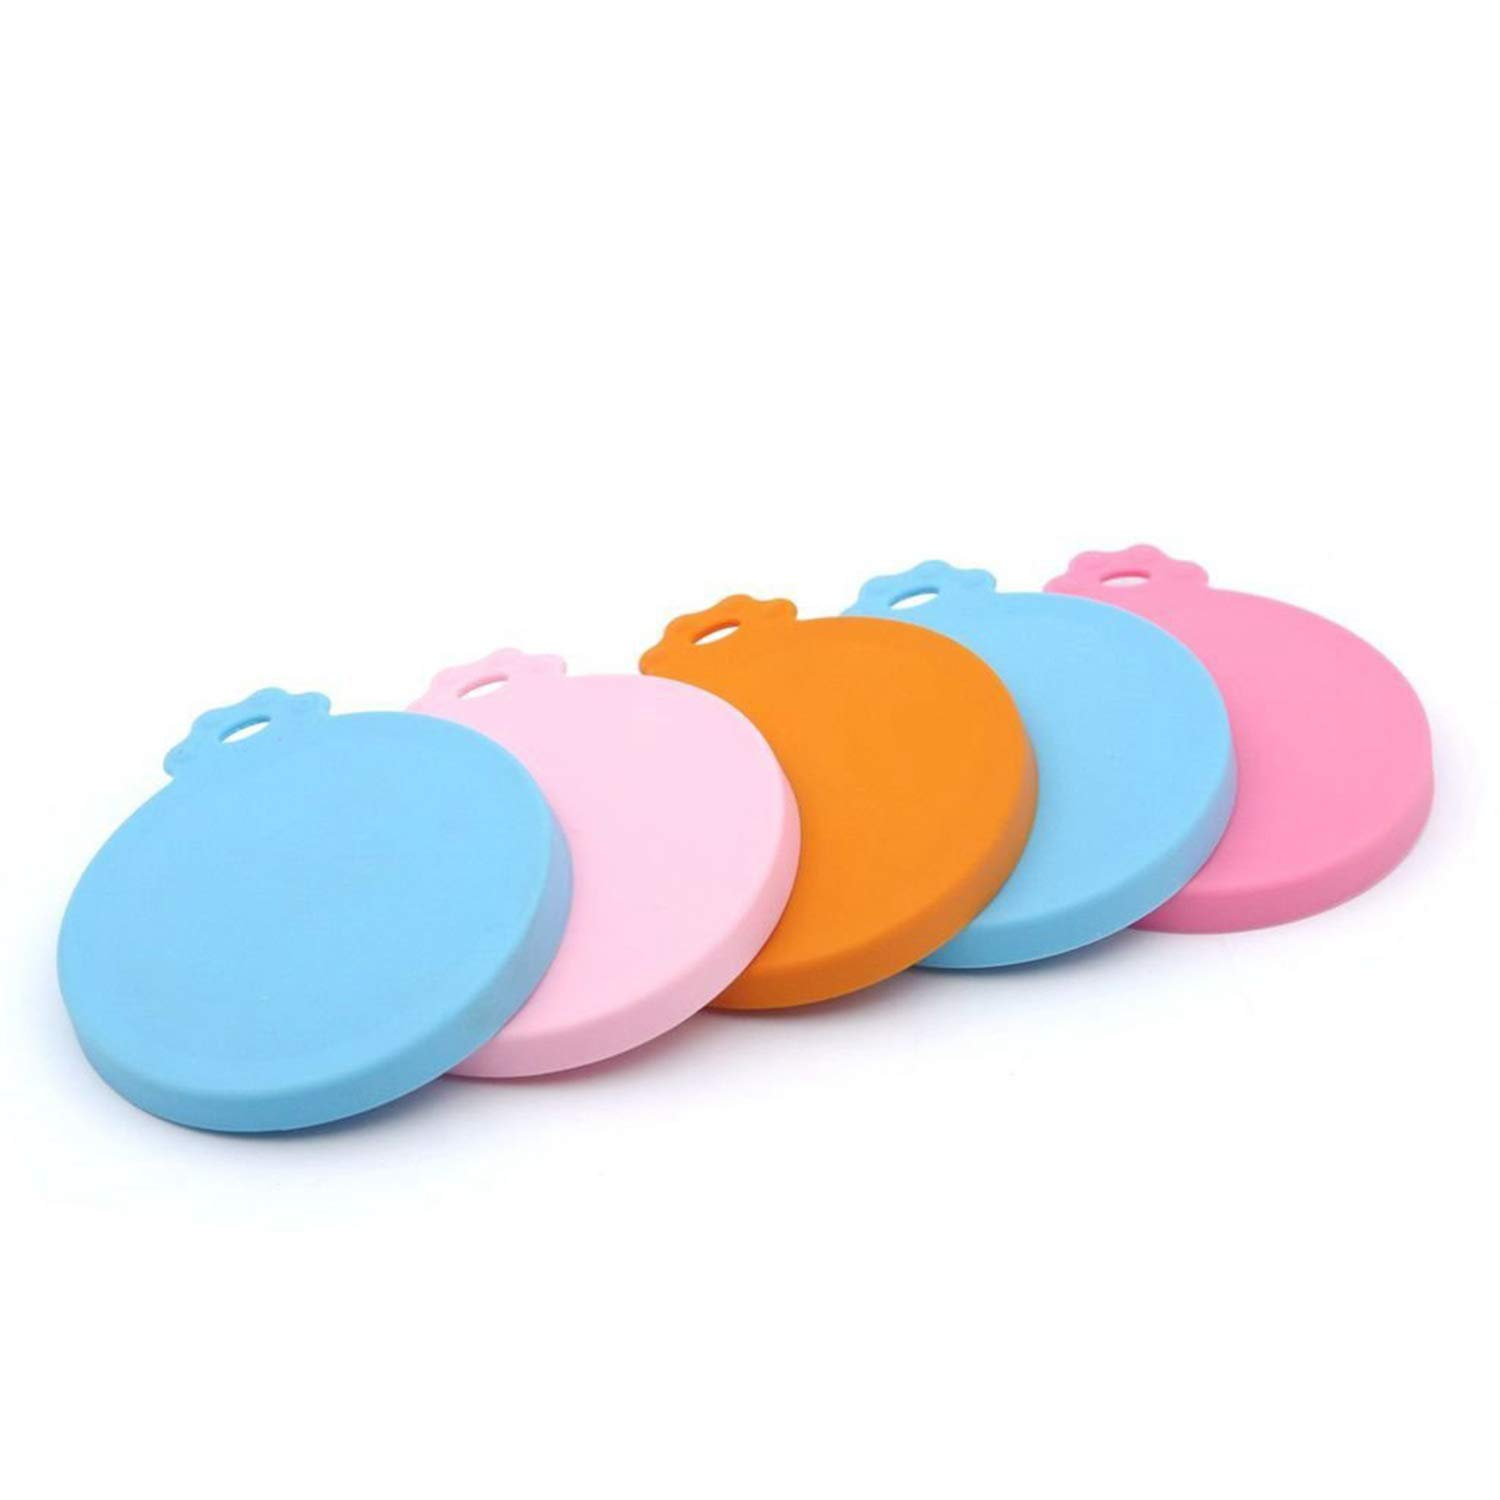 Super Design Can Covers Universal Silicone Can Lids for Pet Food Cans Fits Most Standard Size Can Tops